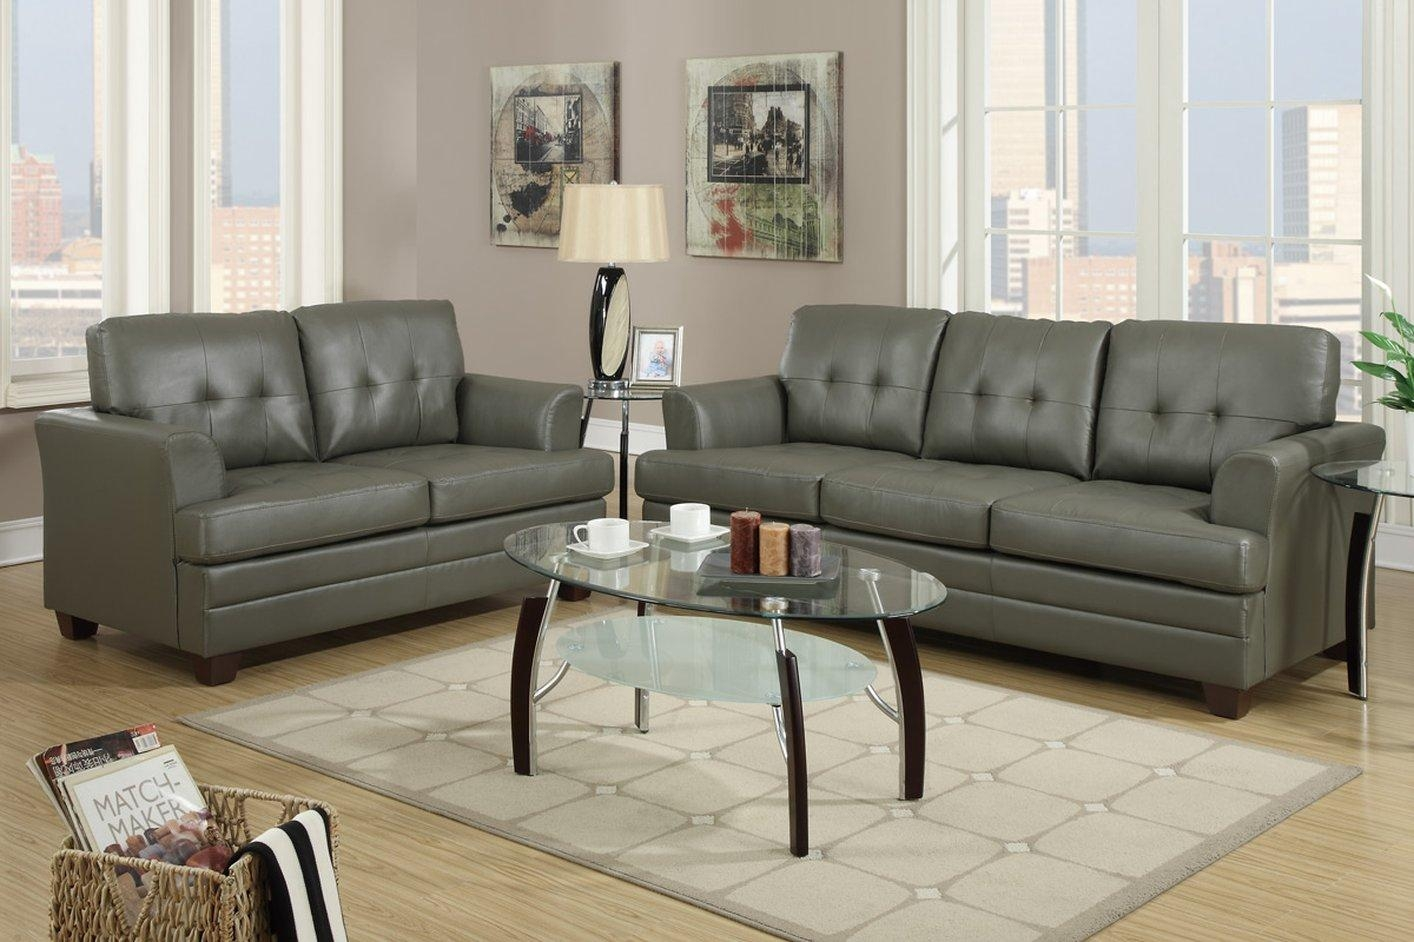 Black Leather Sofa And Loveseat Set | Tehranmix Decoration Throughout Black Leather Sofas And Loveseat Sets (Image 9 of 20)